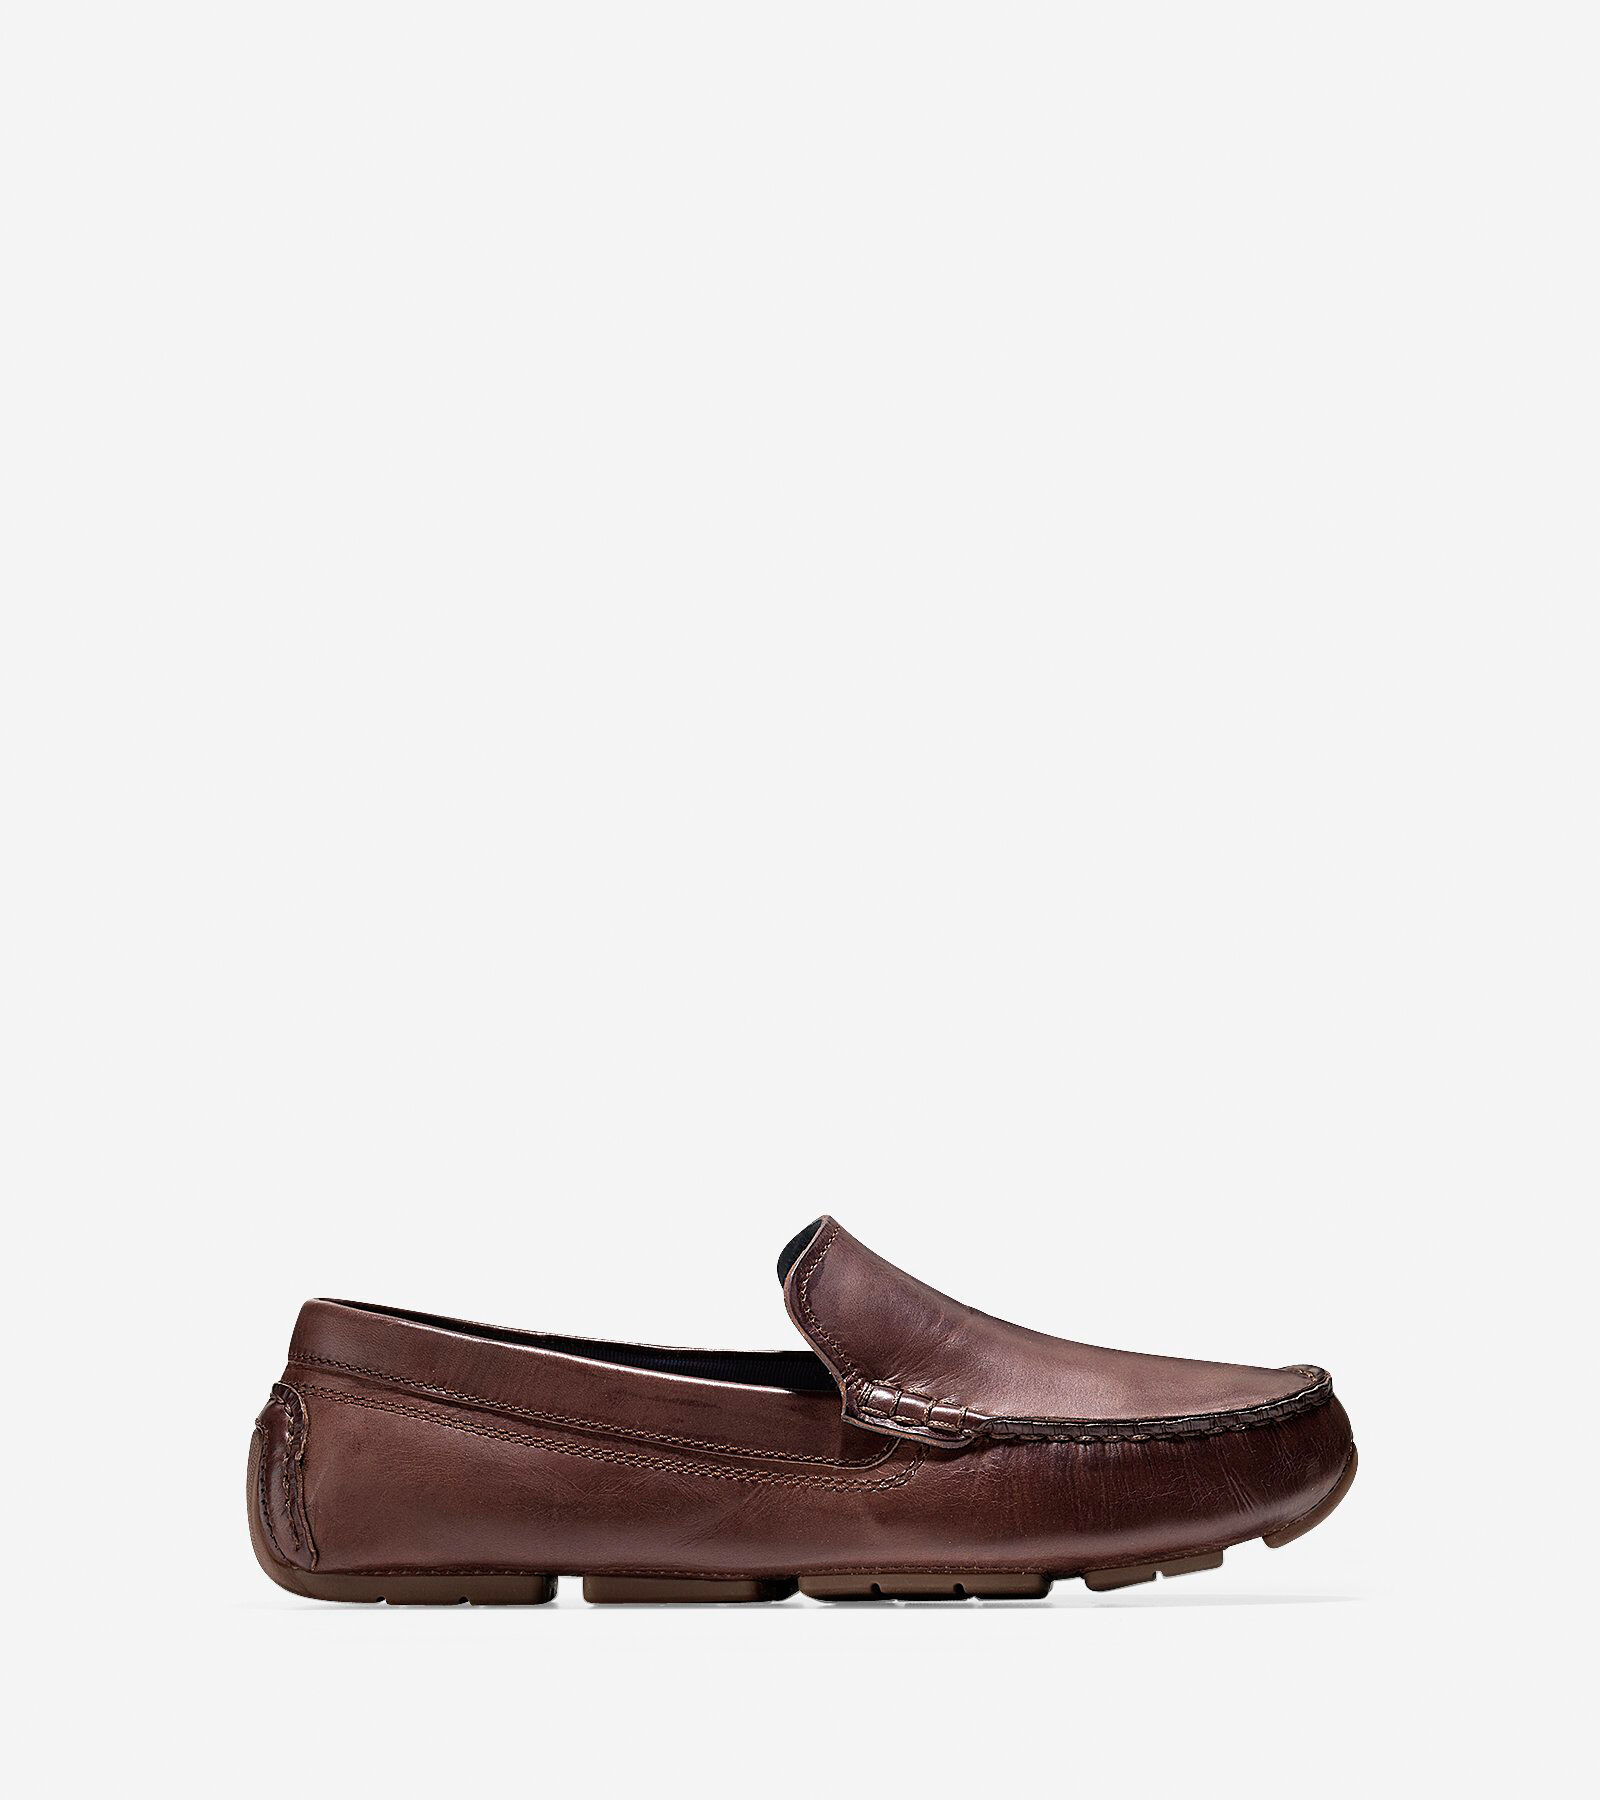 Cole Haan Monk Strap Loafer- Brown Size 12 M (H6)